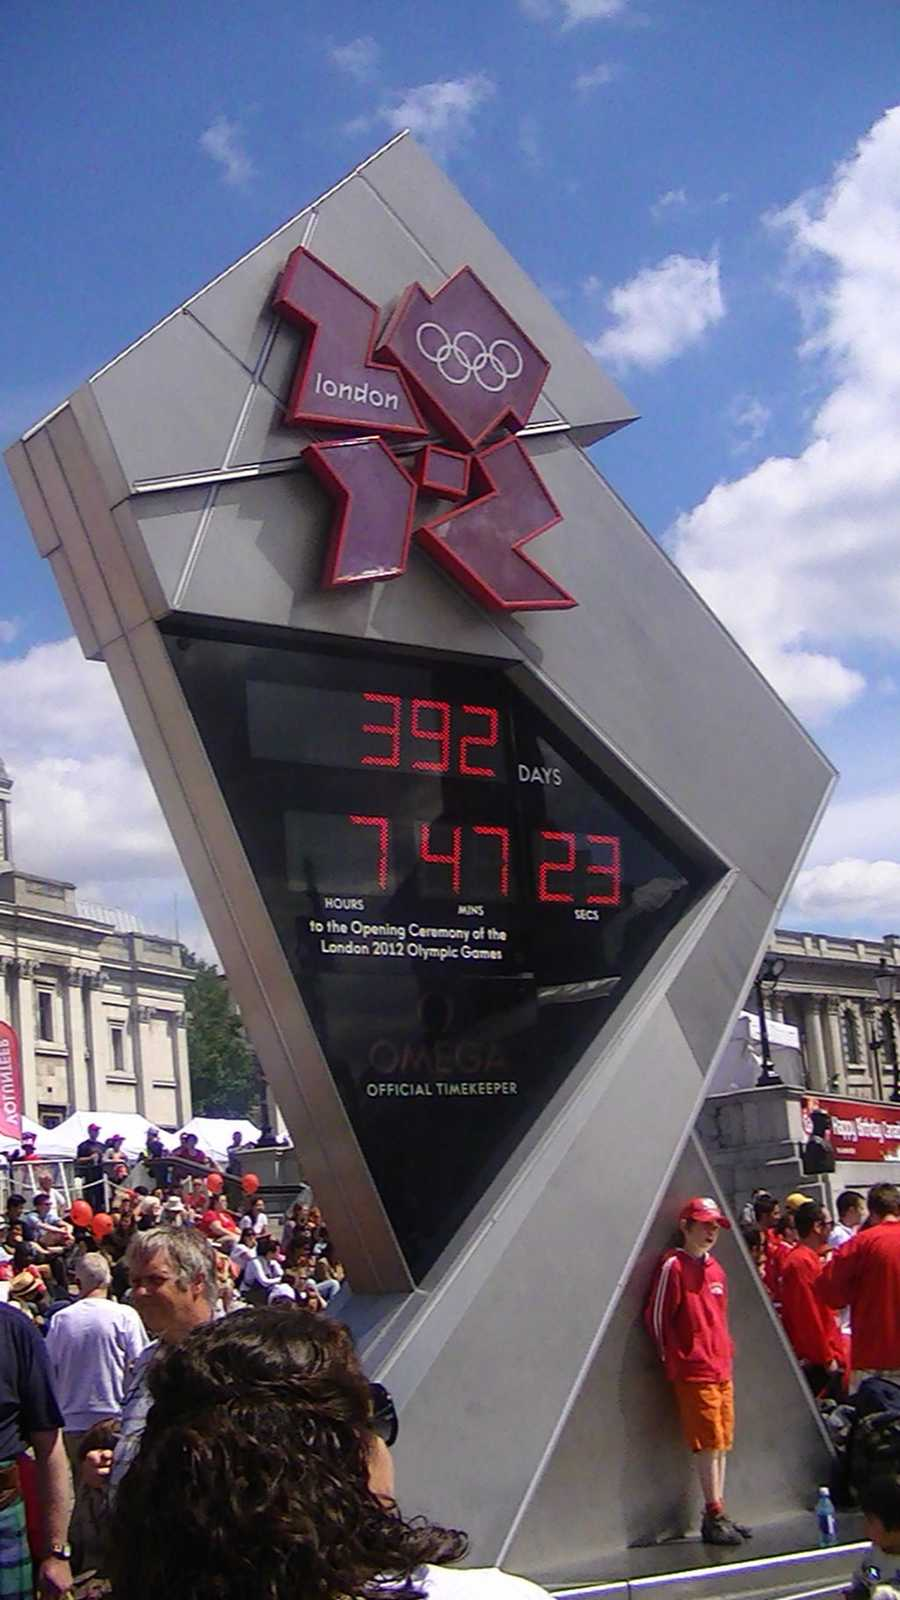 2012 - London, England: The 2012 Summer Olympic Games will take place in London, making it the first city to officially host the modern Olympic Games three times.